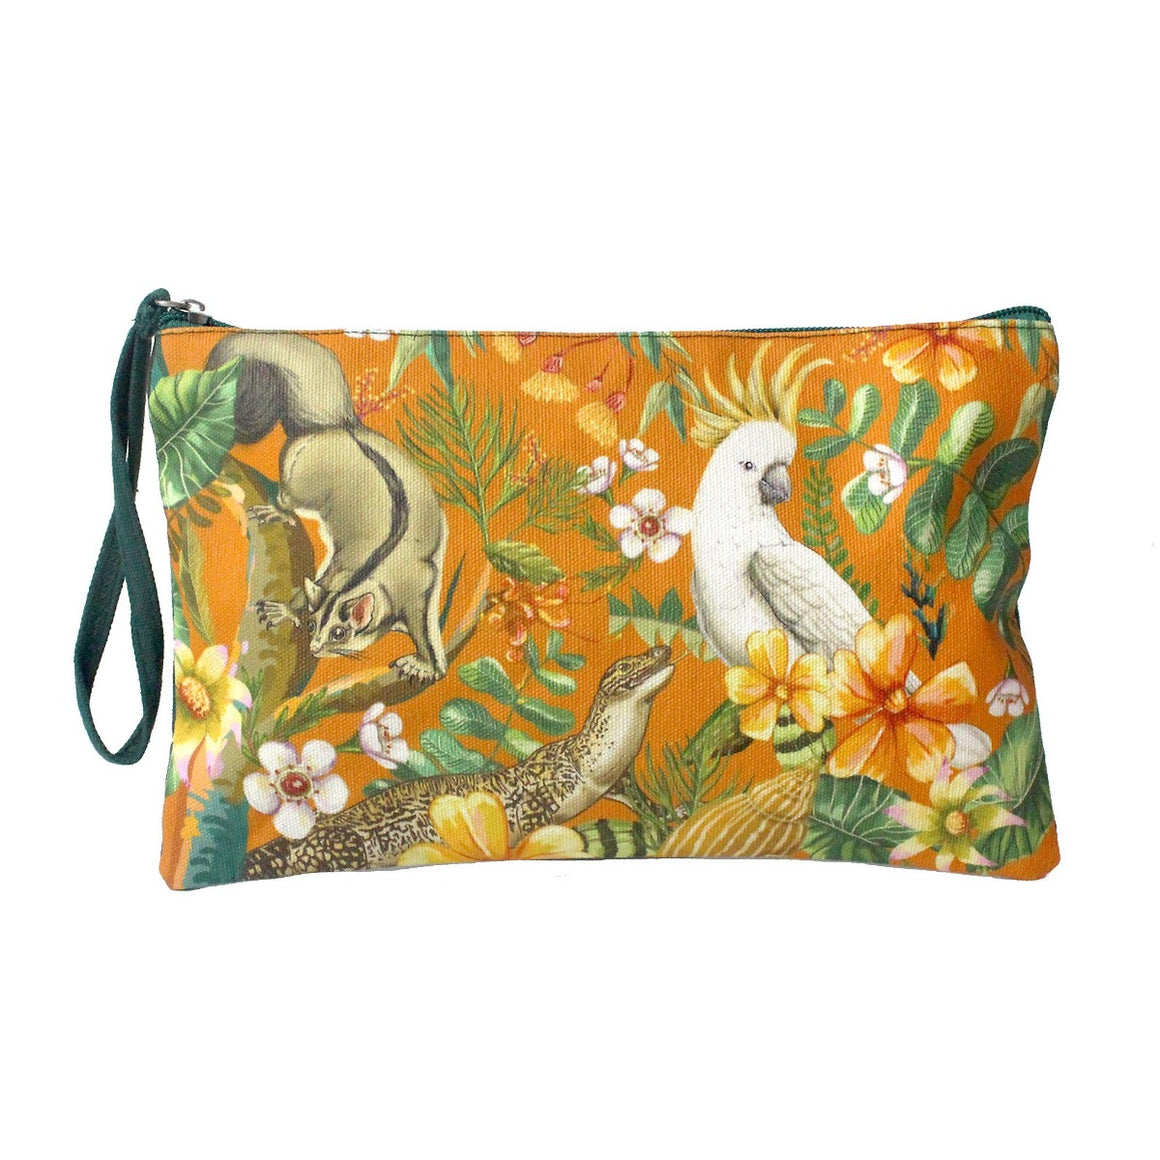 Clutch purse featuring a yellow background with a variety of floral designs including a sugar glider, lizard and cockatoo